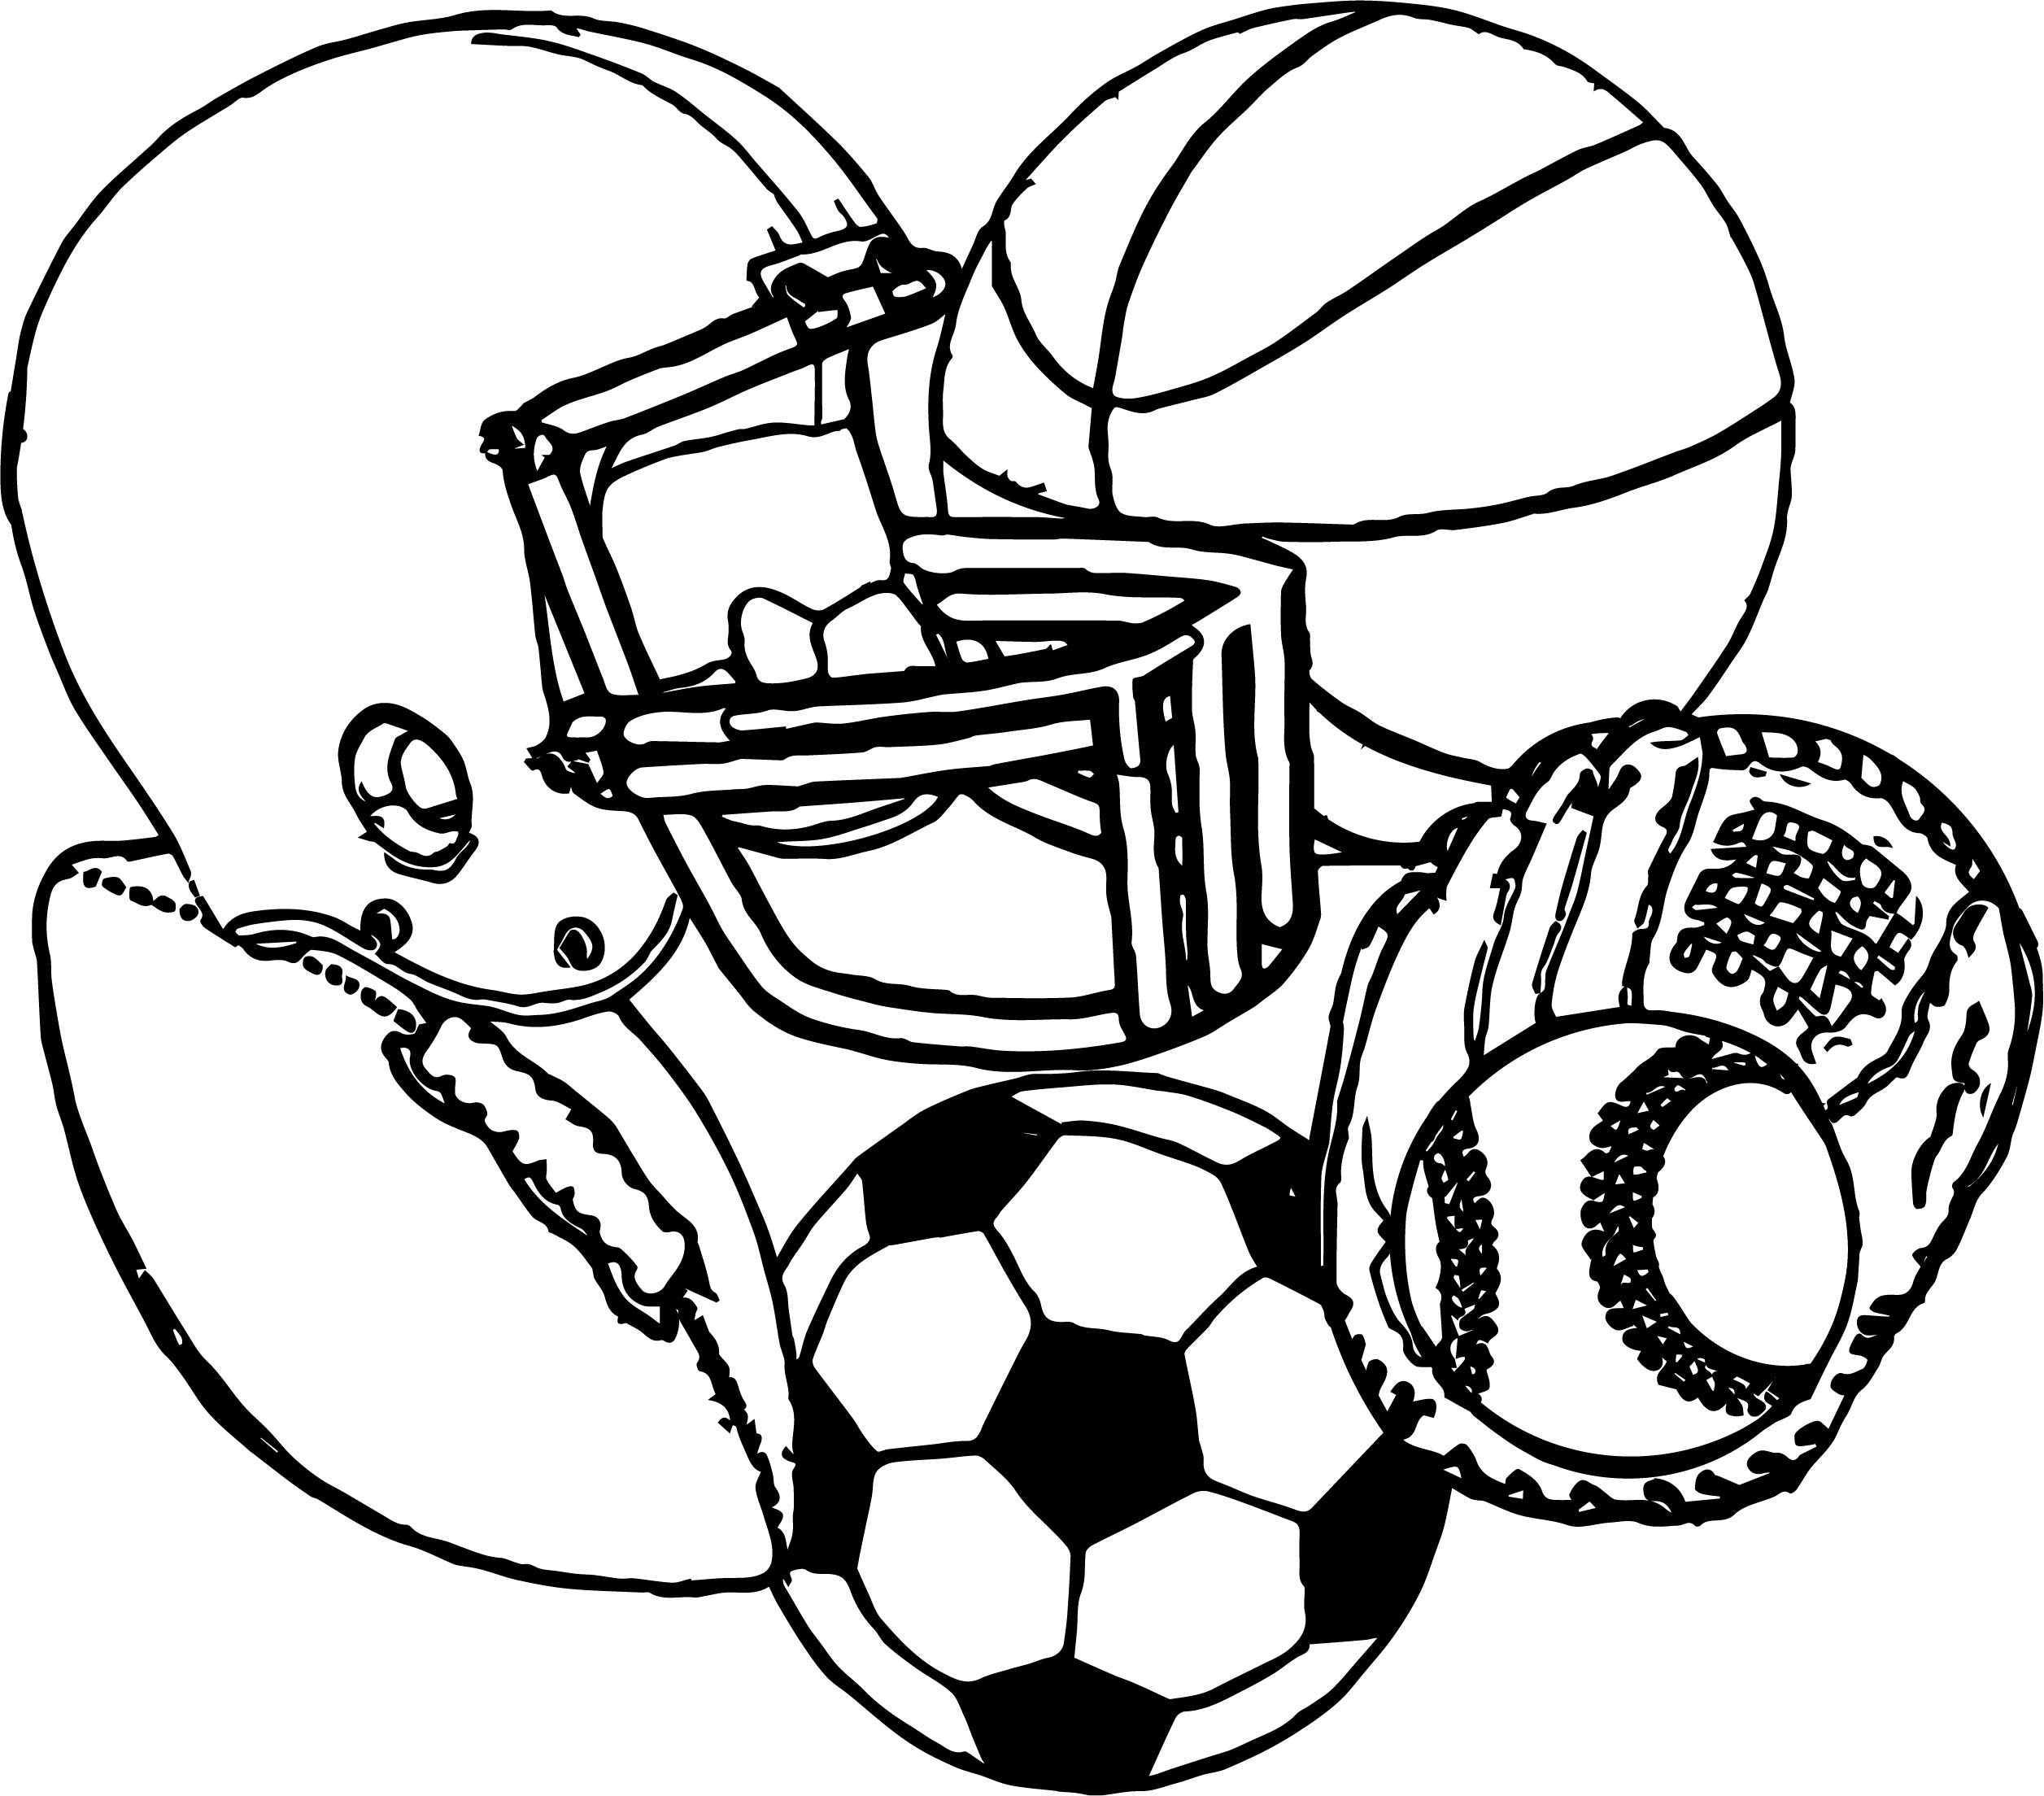 Sports Equipment Football Baseball Basketball Soccer Coloring Page ...